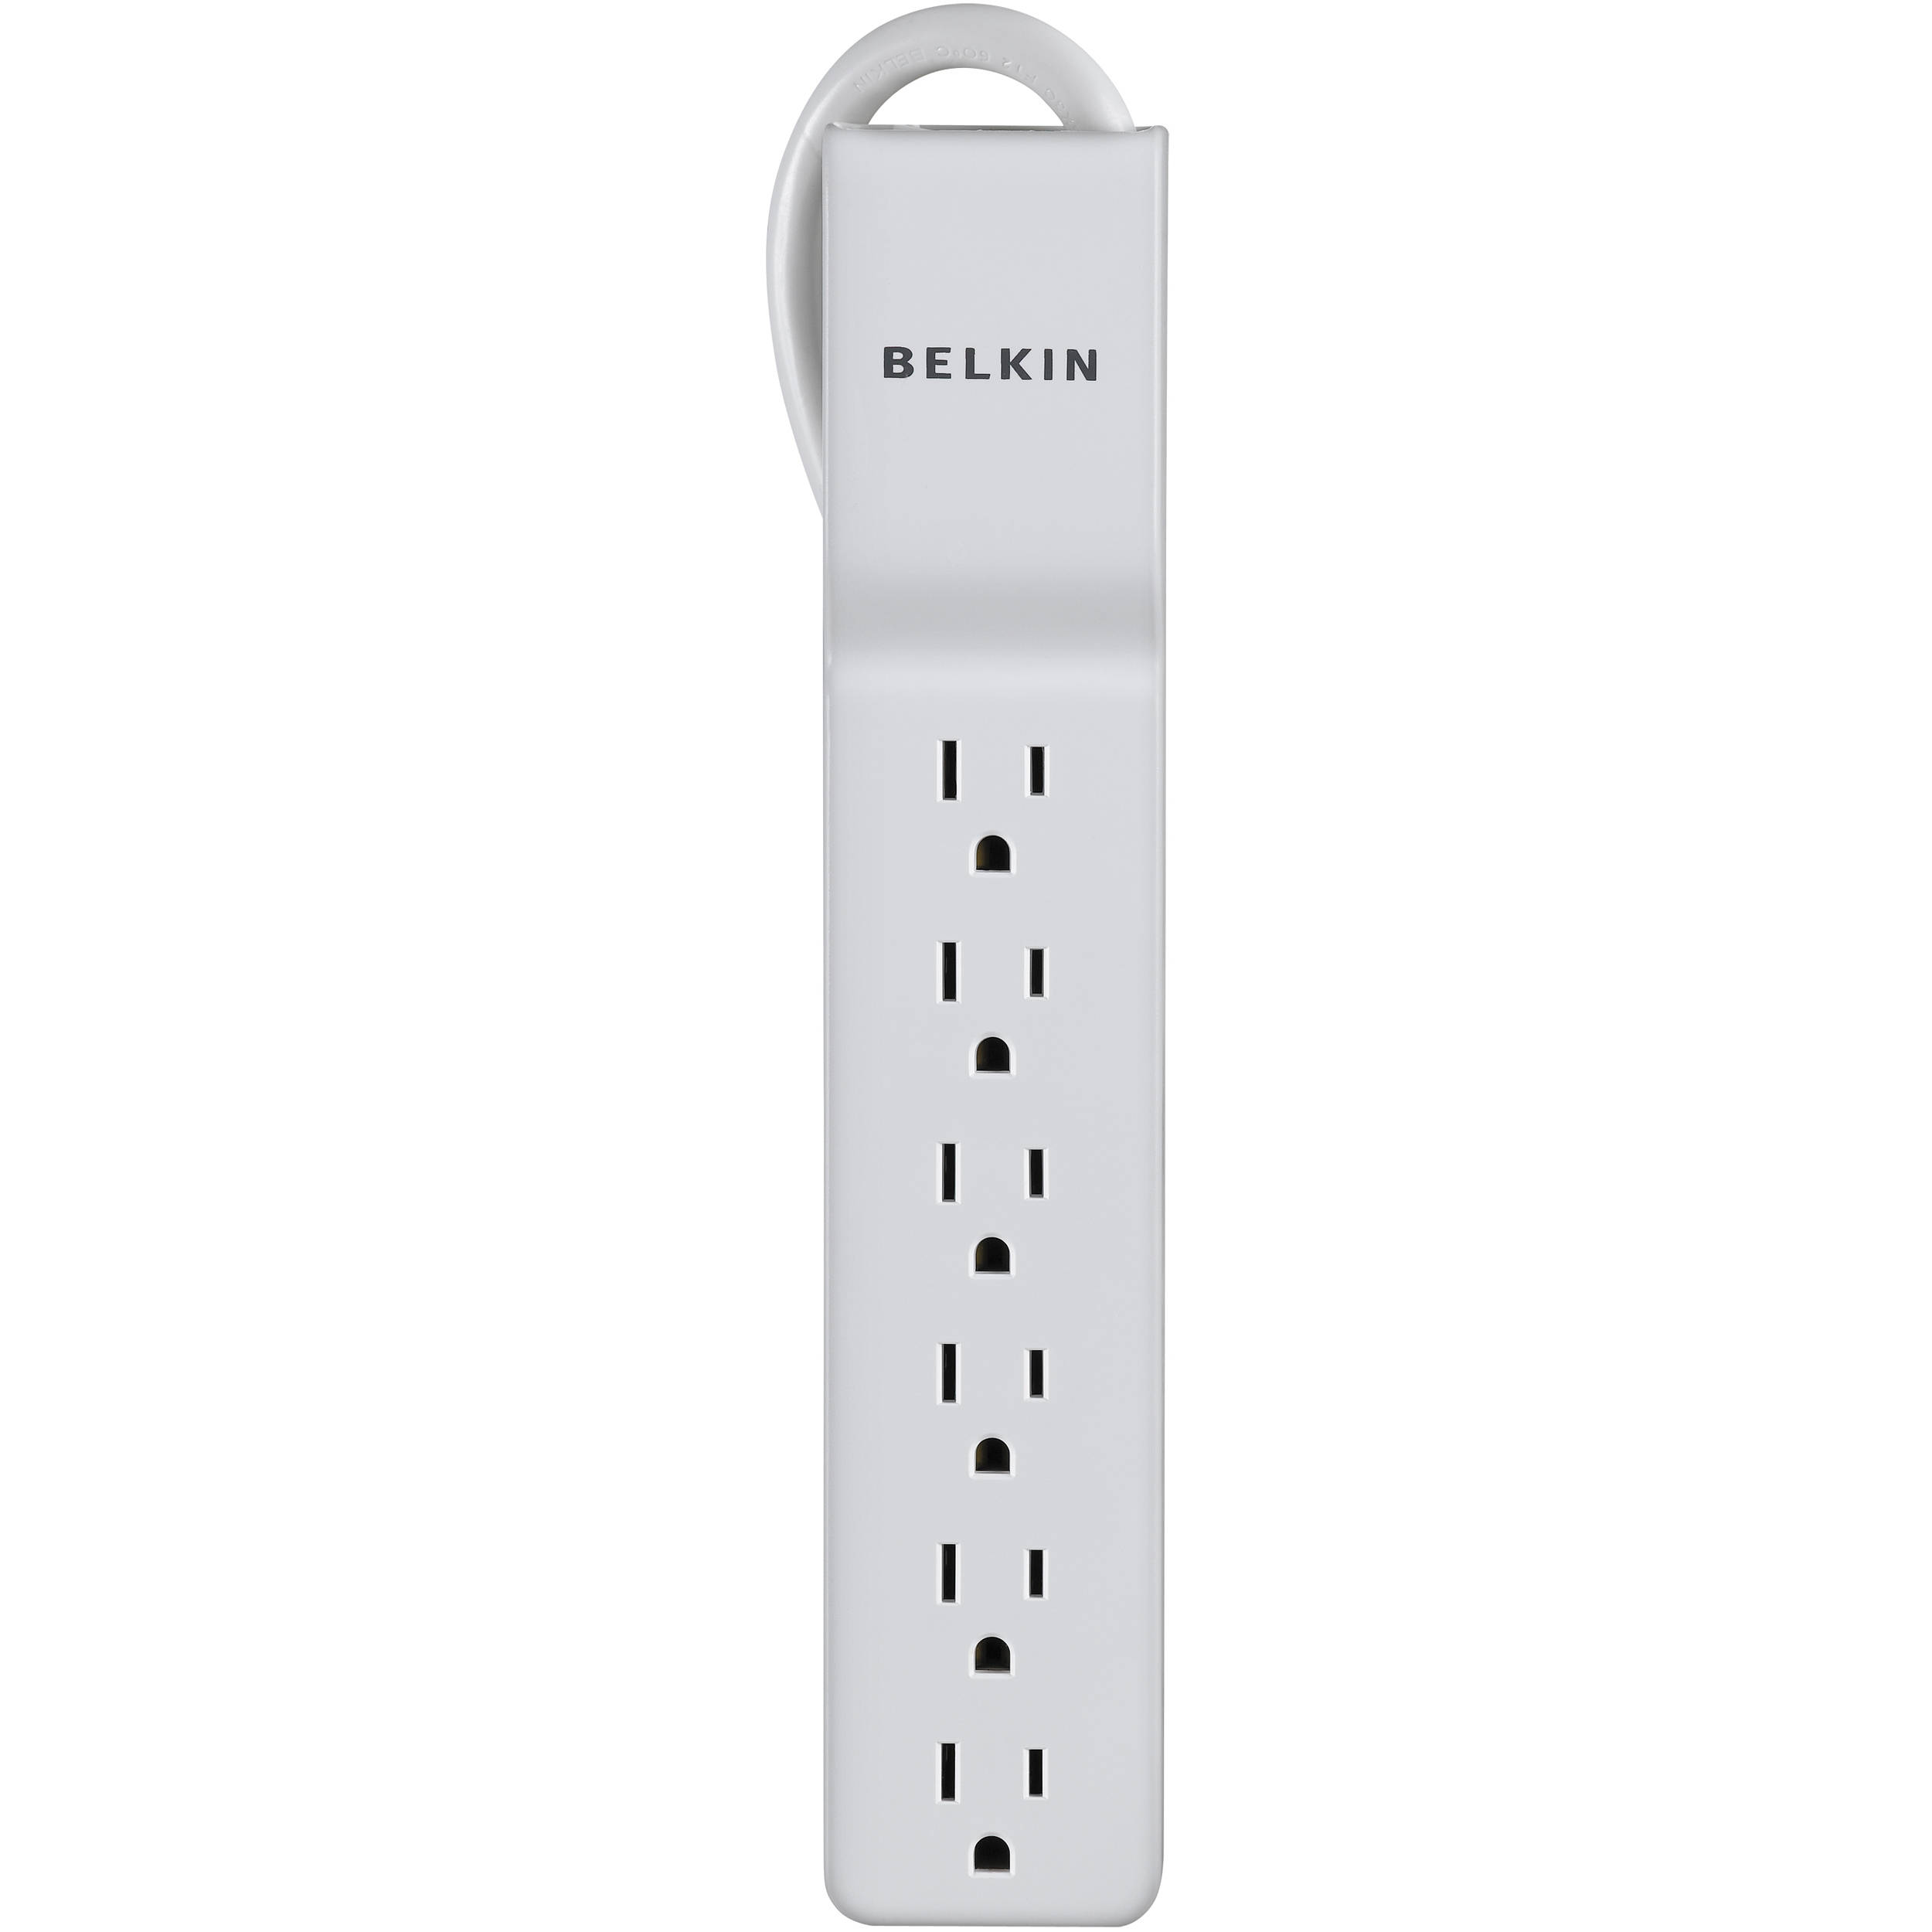 belkin 6 outlet homeoffice surge protector 6 belkin office